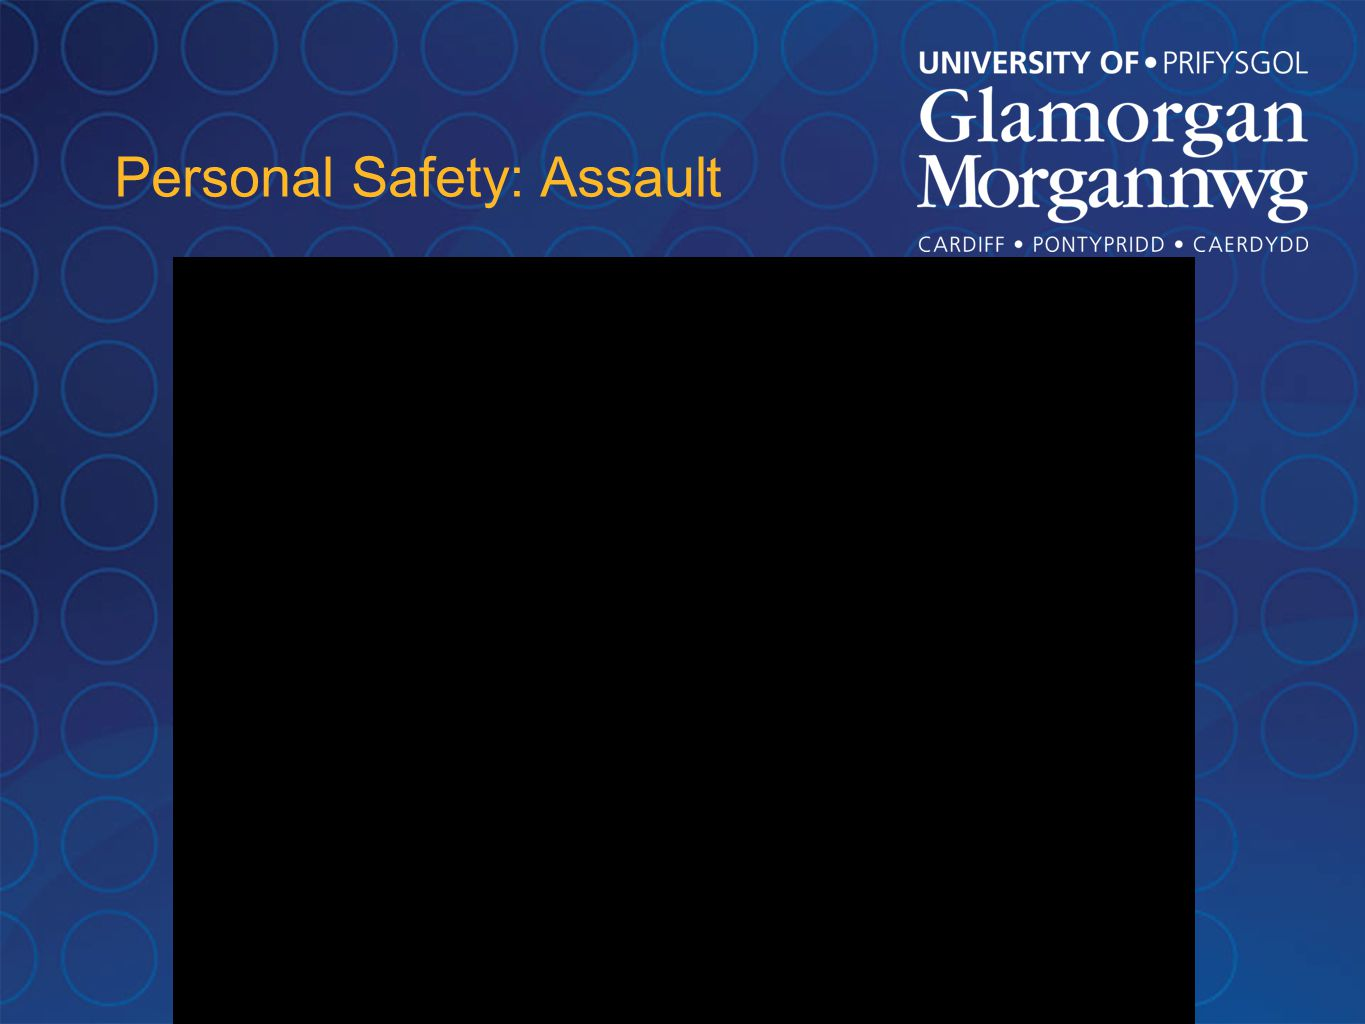 Personal Safety: Assault